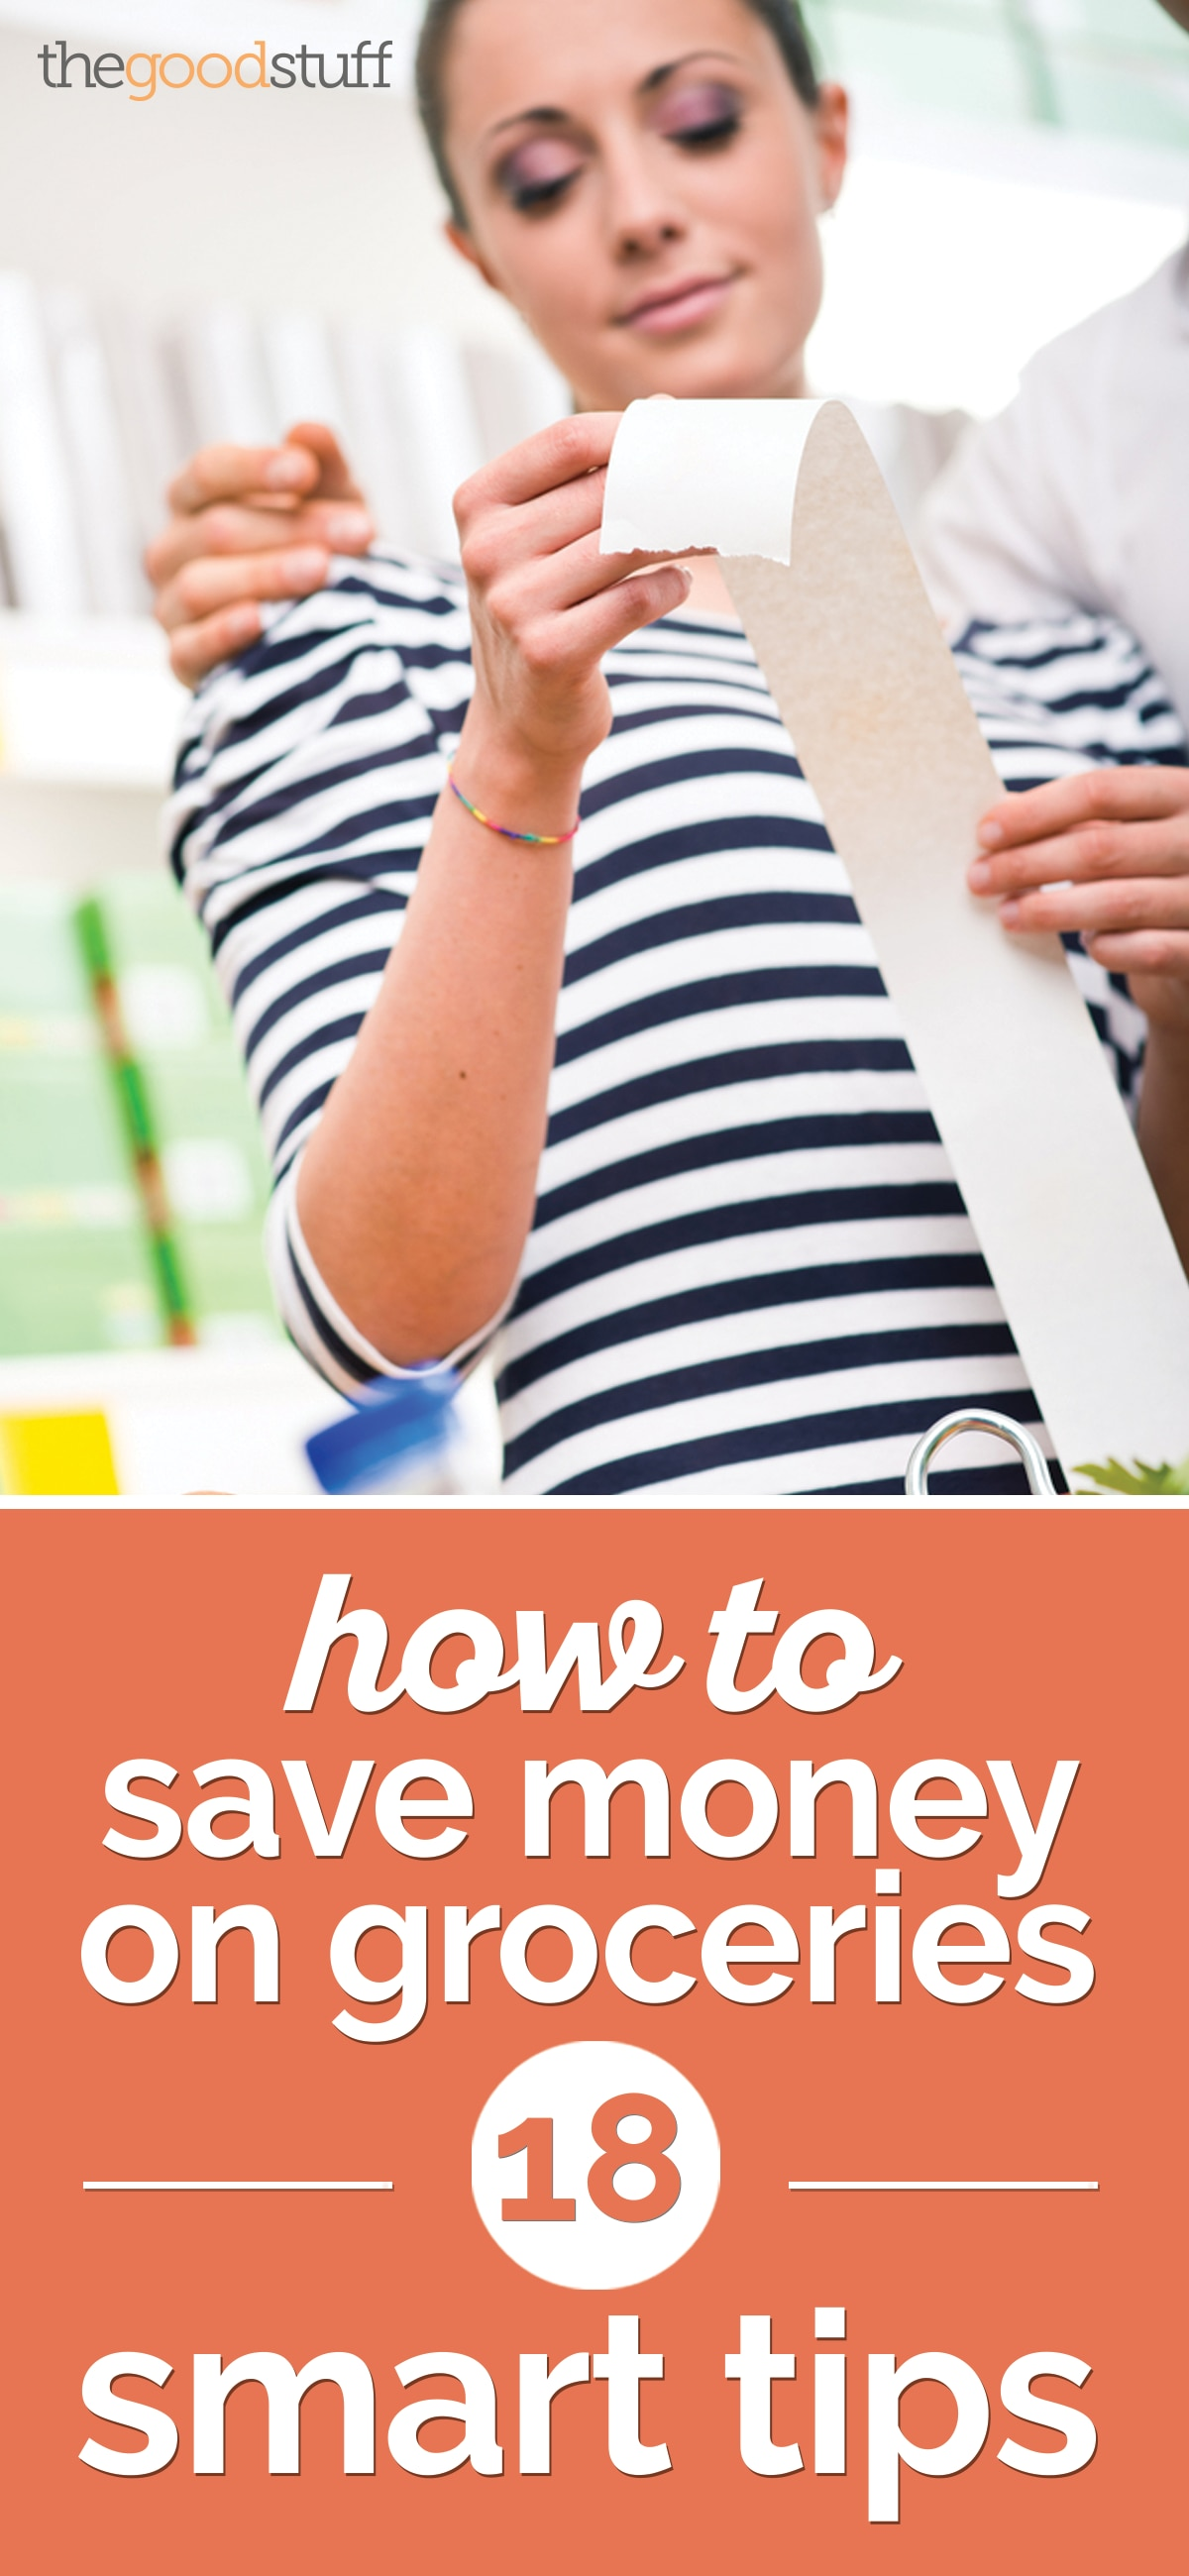 How to Save Money on Groceries: 18 Smart Tips | the good stuff